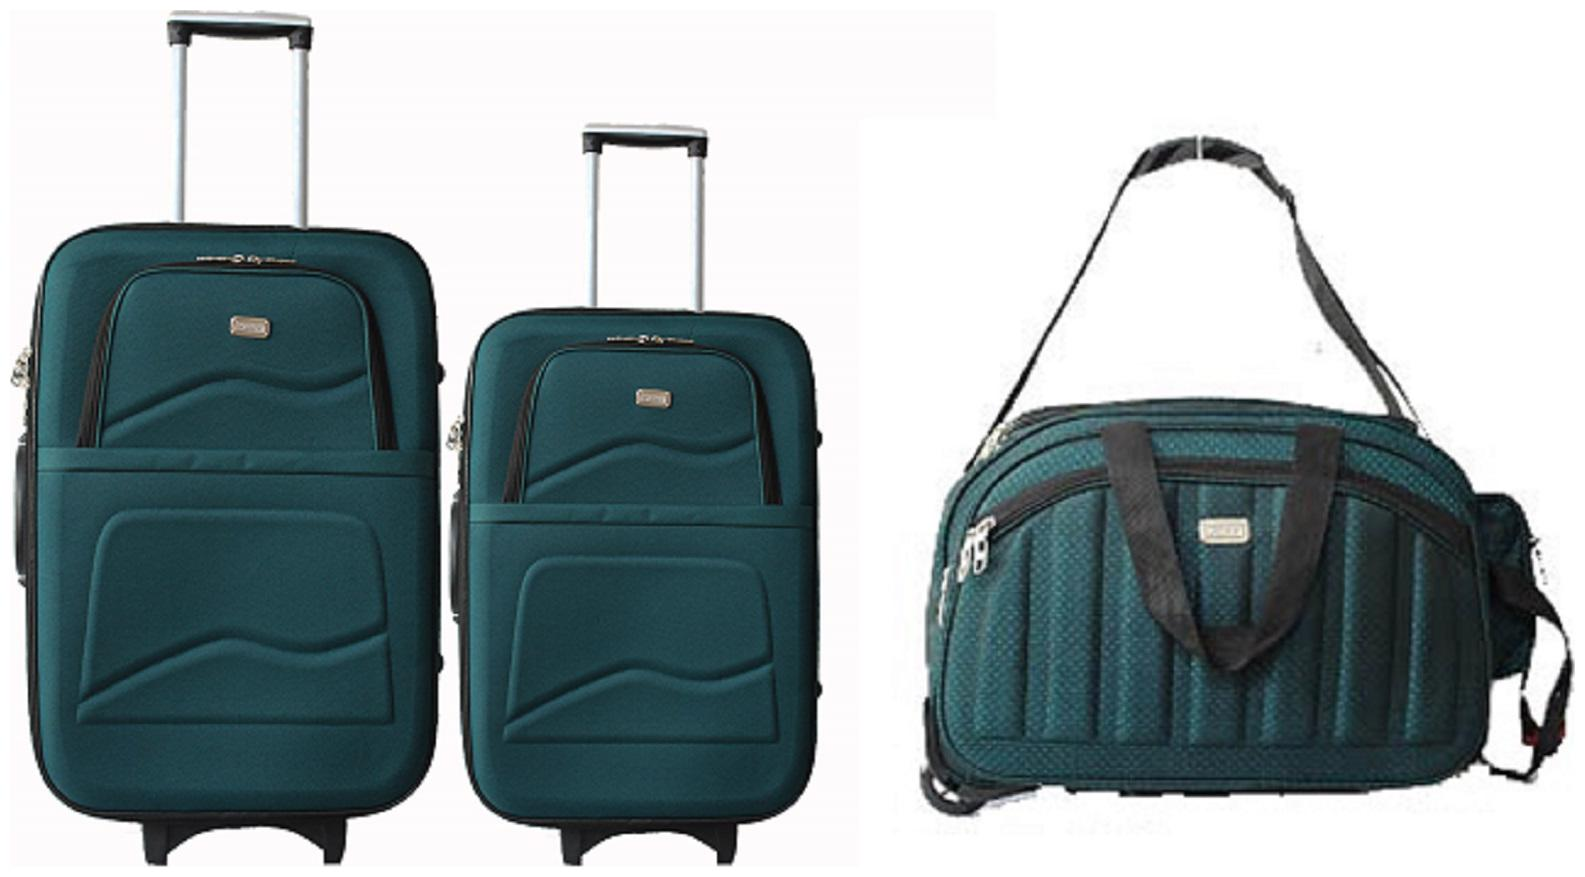 VIDHI Turquoise Luggage Combo Set pack of 3  20 inch Cabin, 24 inch Check in Suitcase Trolley Bag and 18 inch Expandable and Foldable Duffel Bag